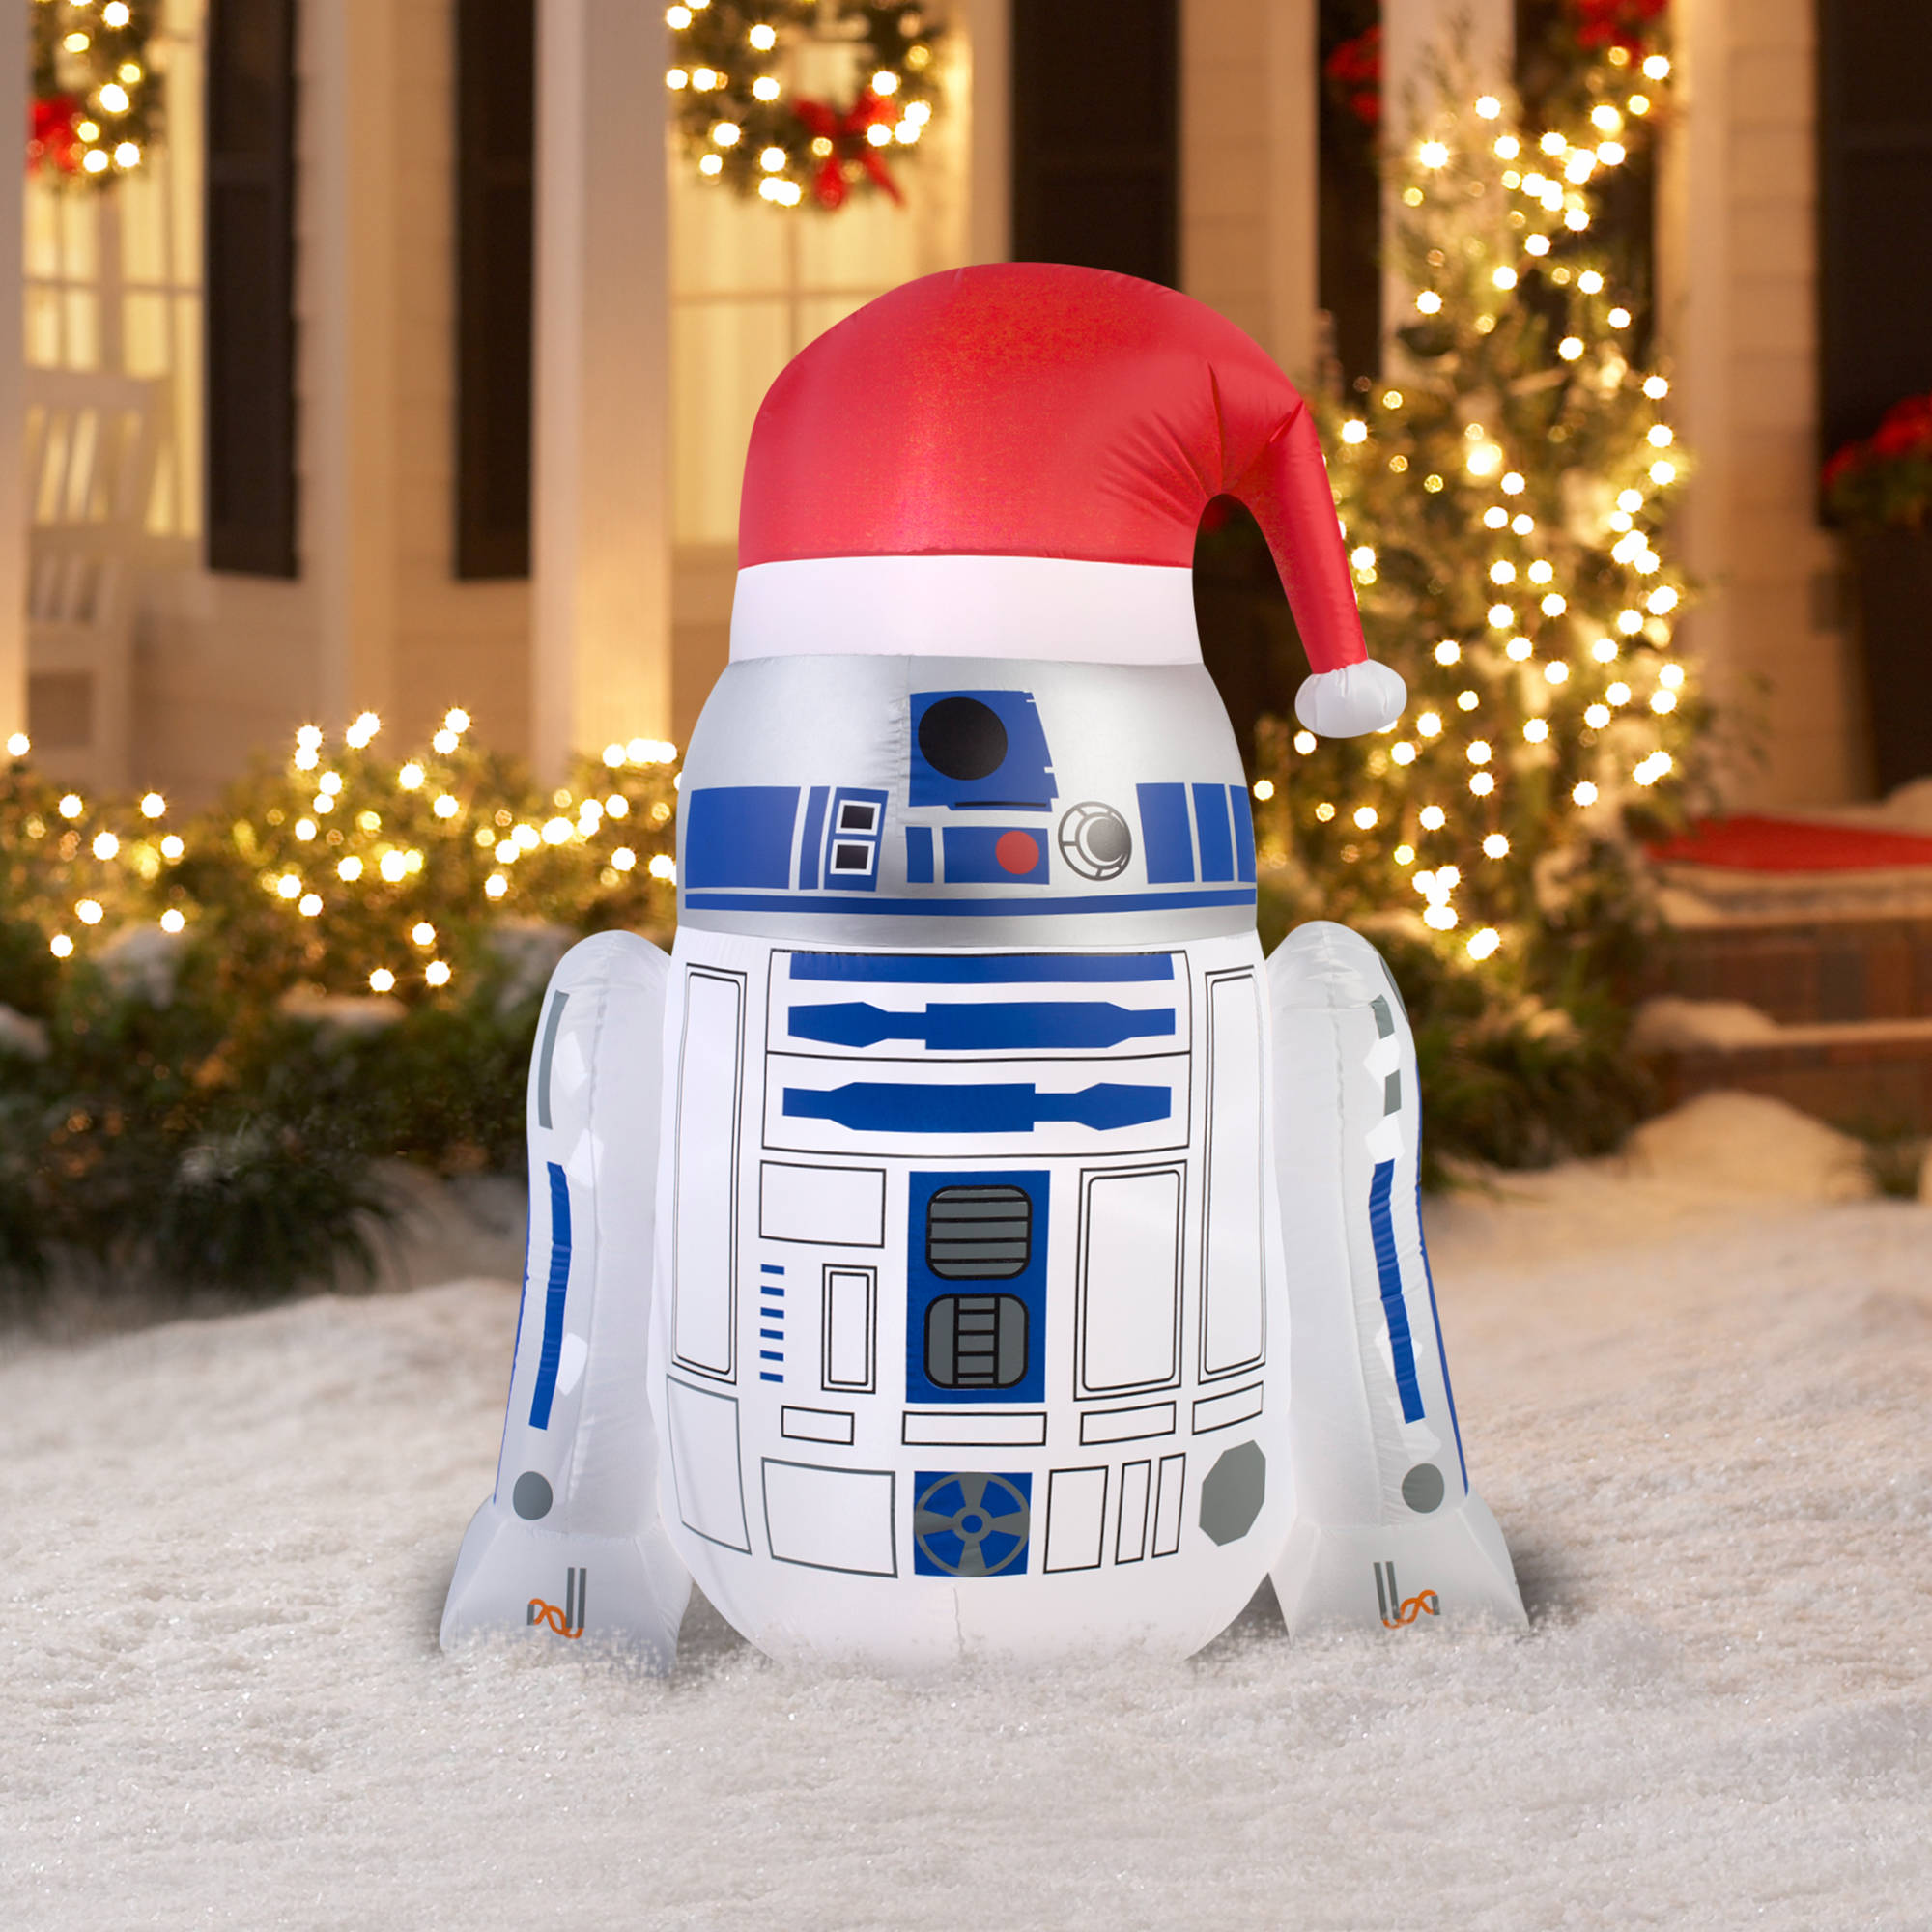 46 airblown inflatable r2d2 with santa hat star wars christmas inflatable walmartcom - Star Wars Inflatable Christmas Decorations